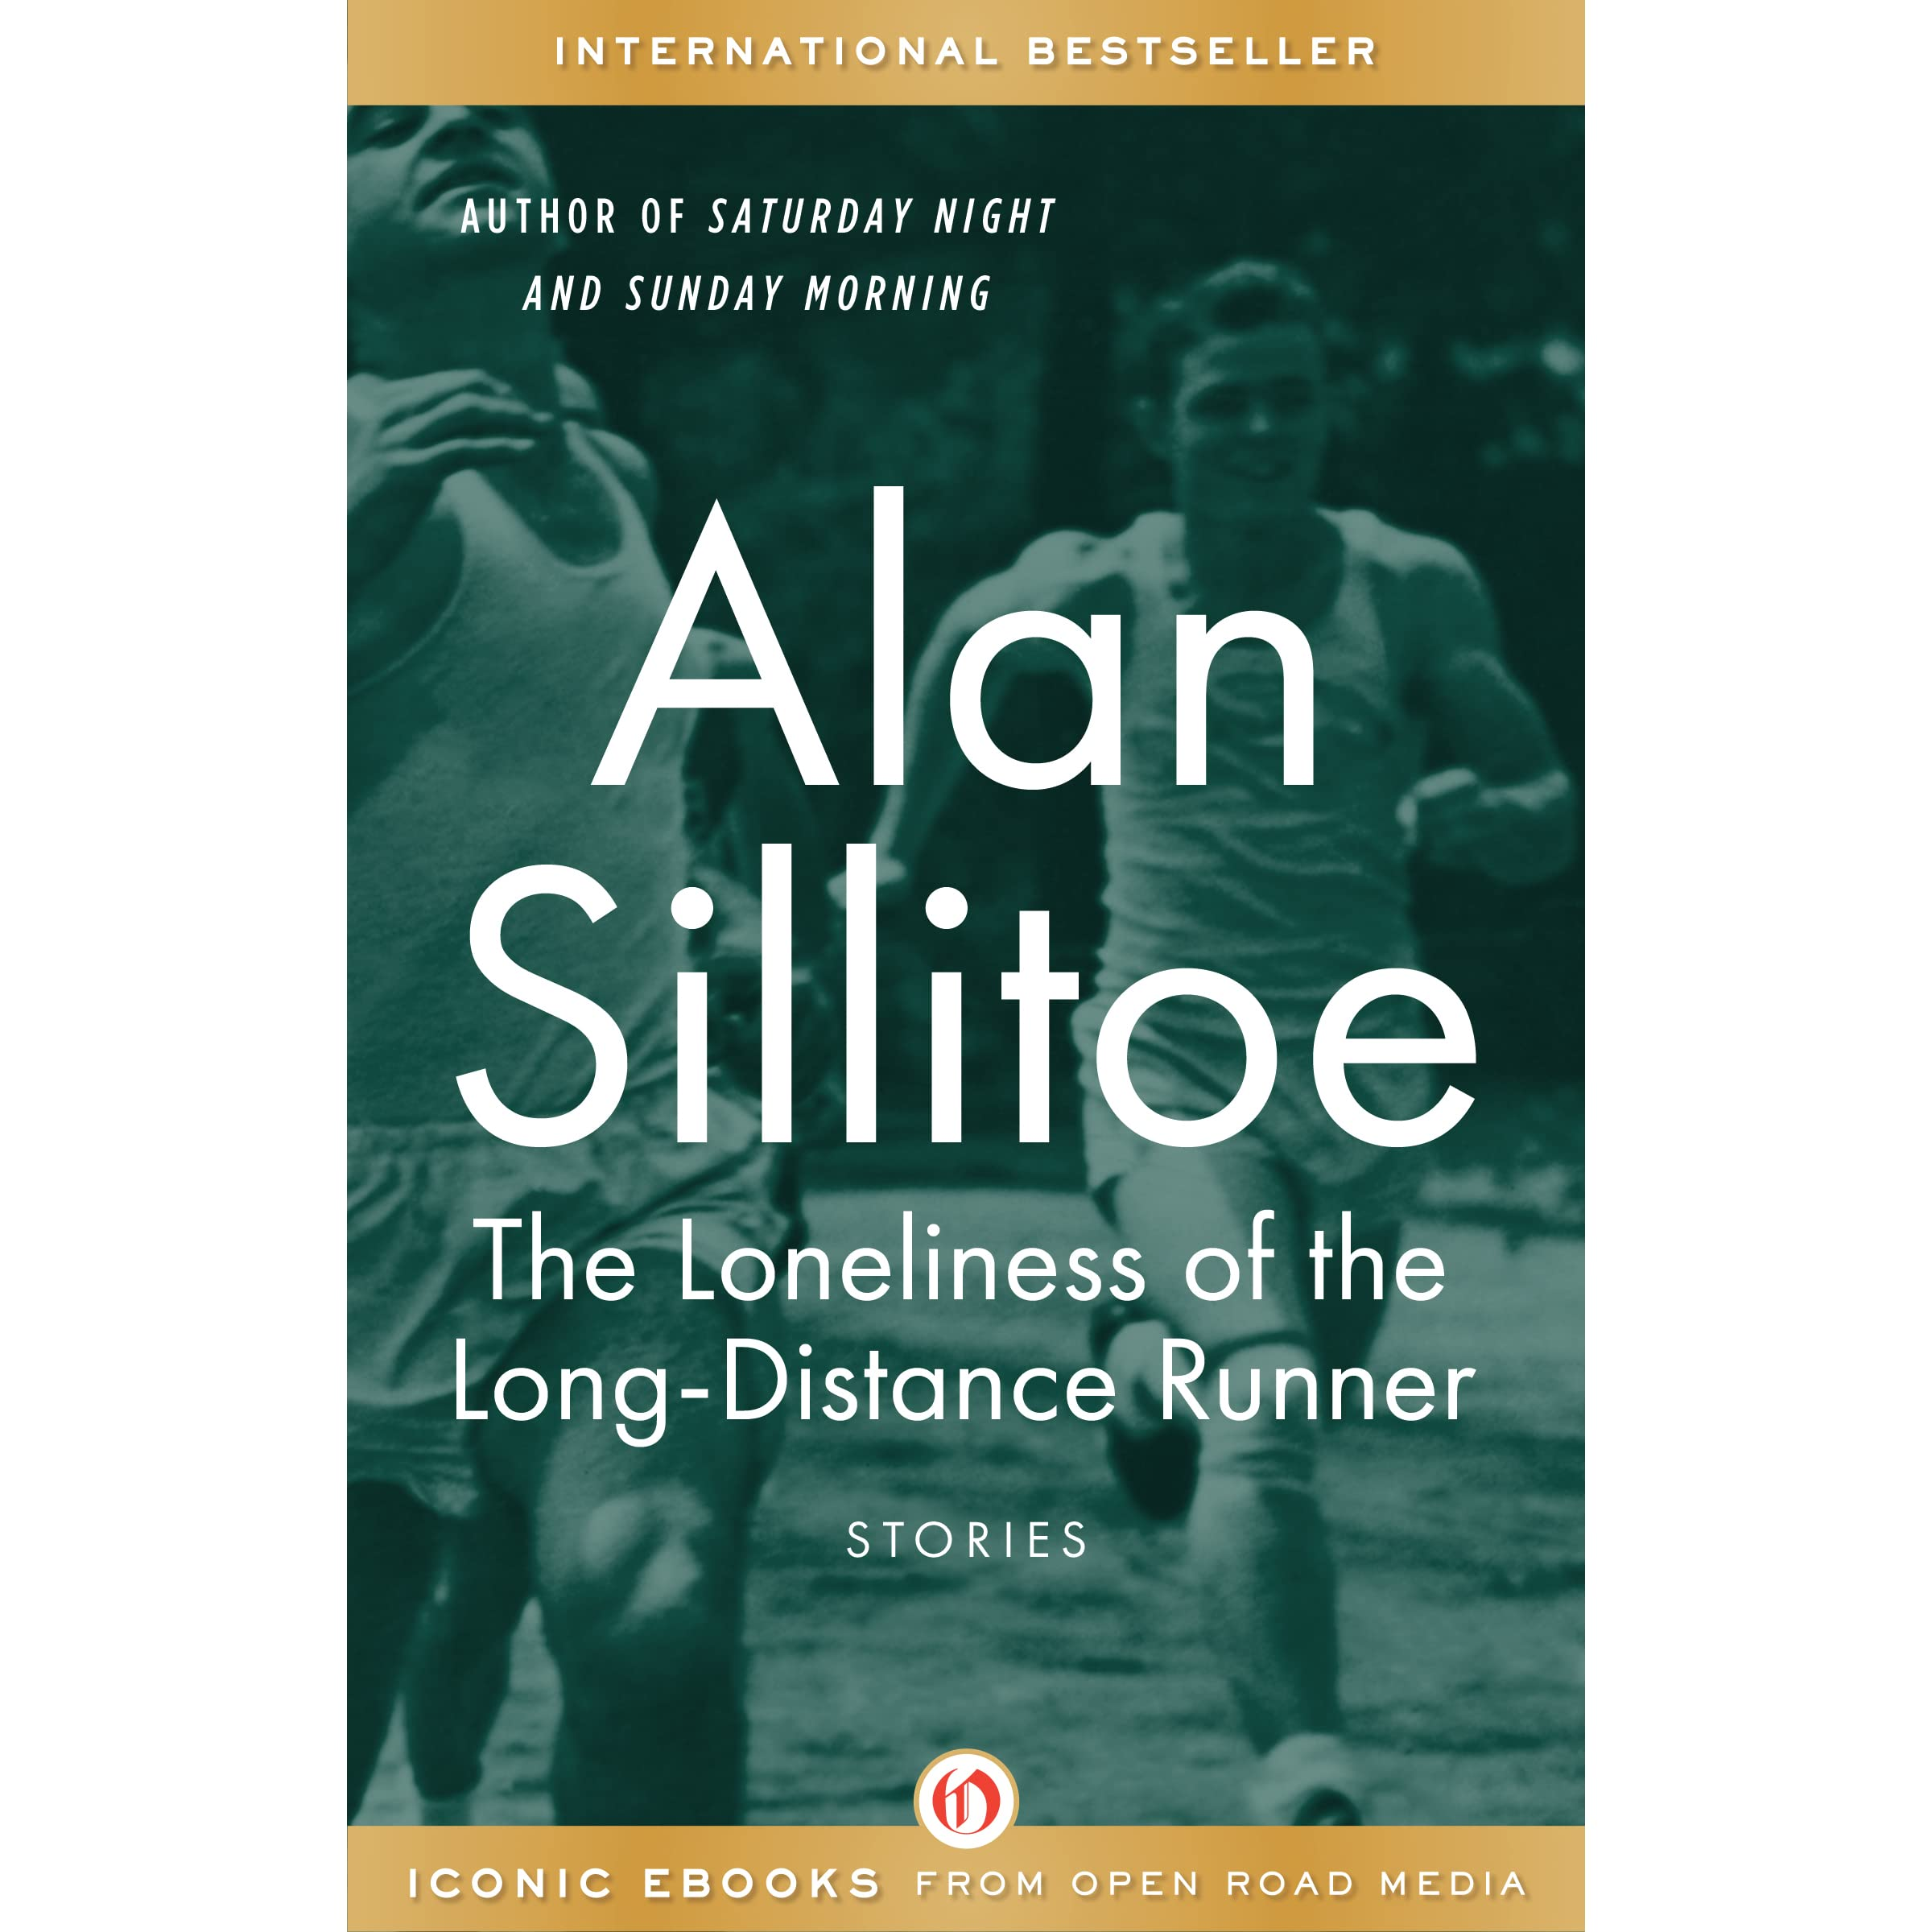 alan sillitoe the loneliness of the long distance runner summary